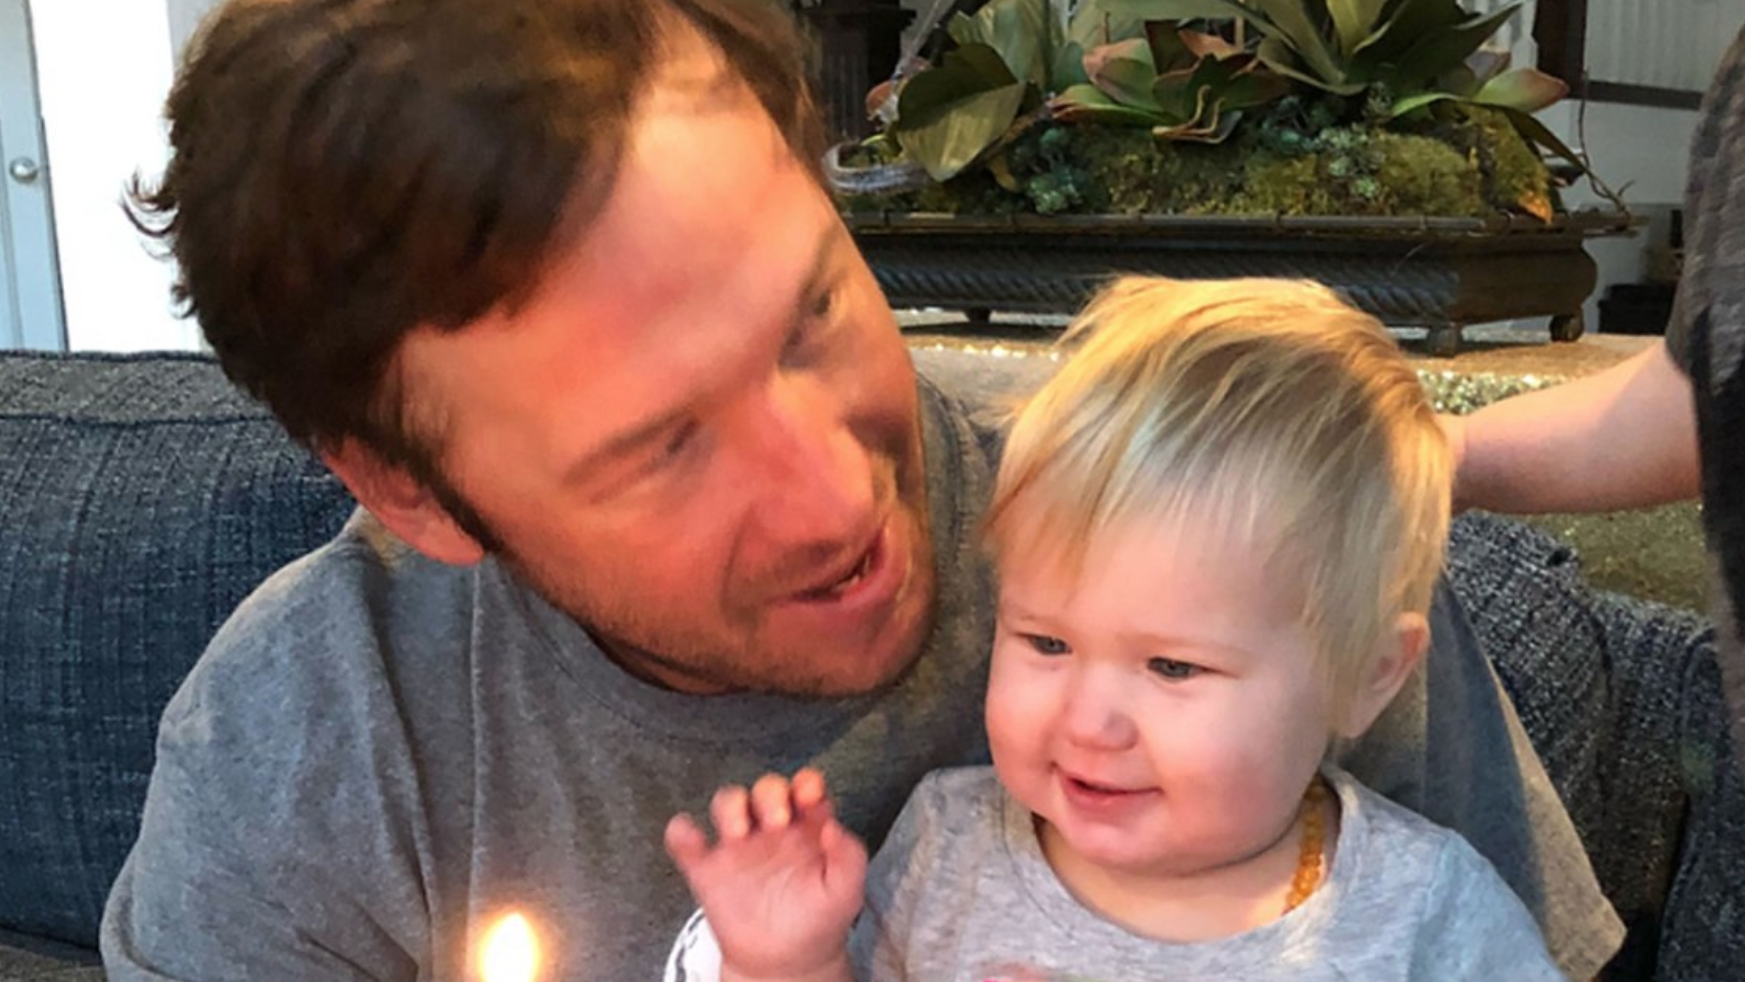 Bode Miller Got the Phone Call Every Parent Fears When His 19-Month-Old Daughter Drowned